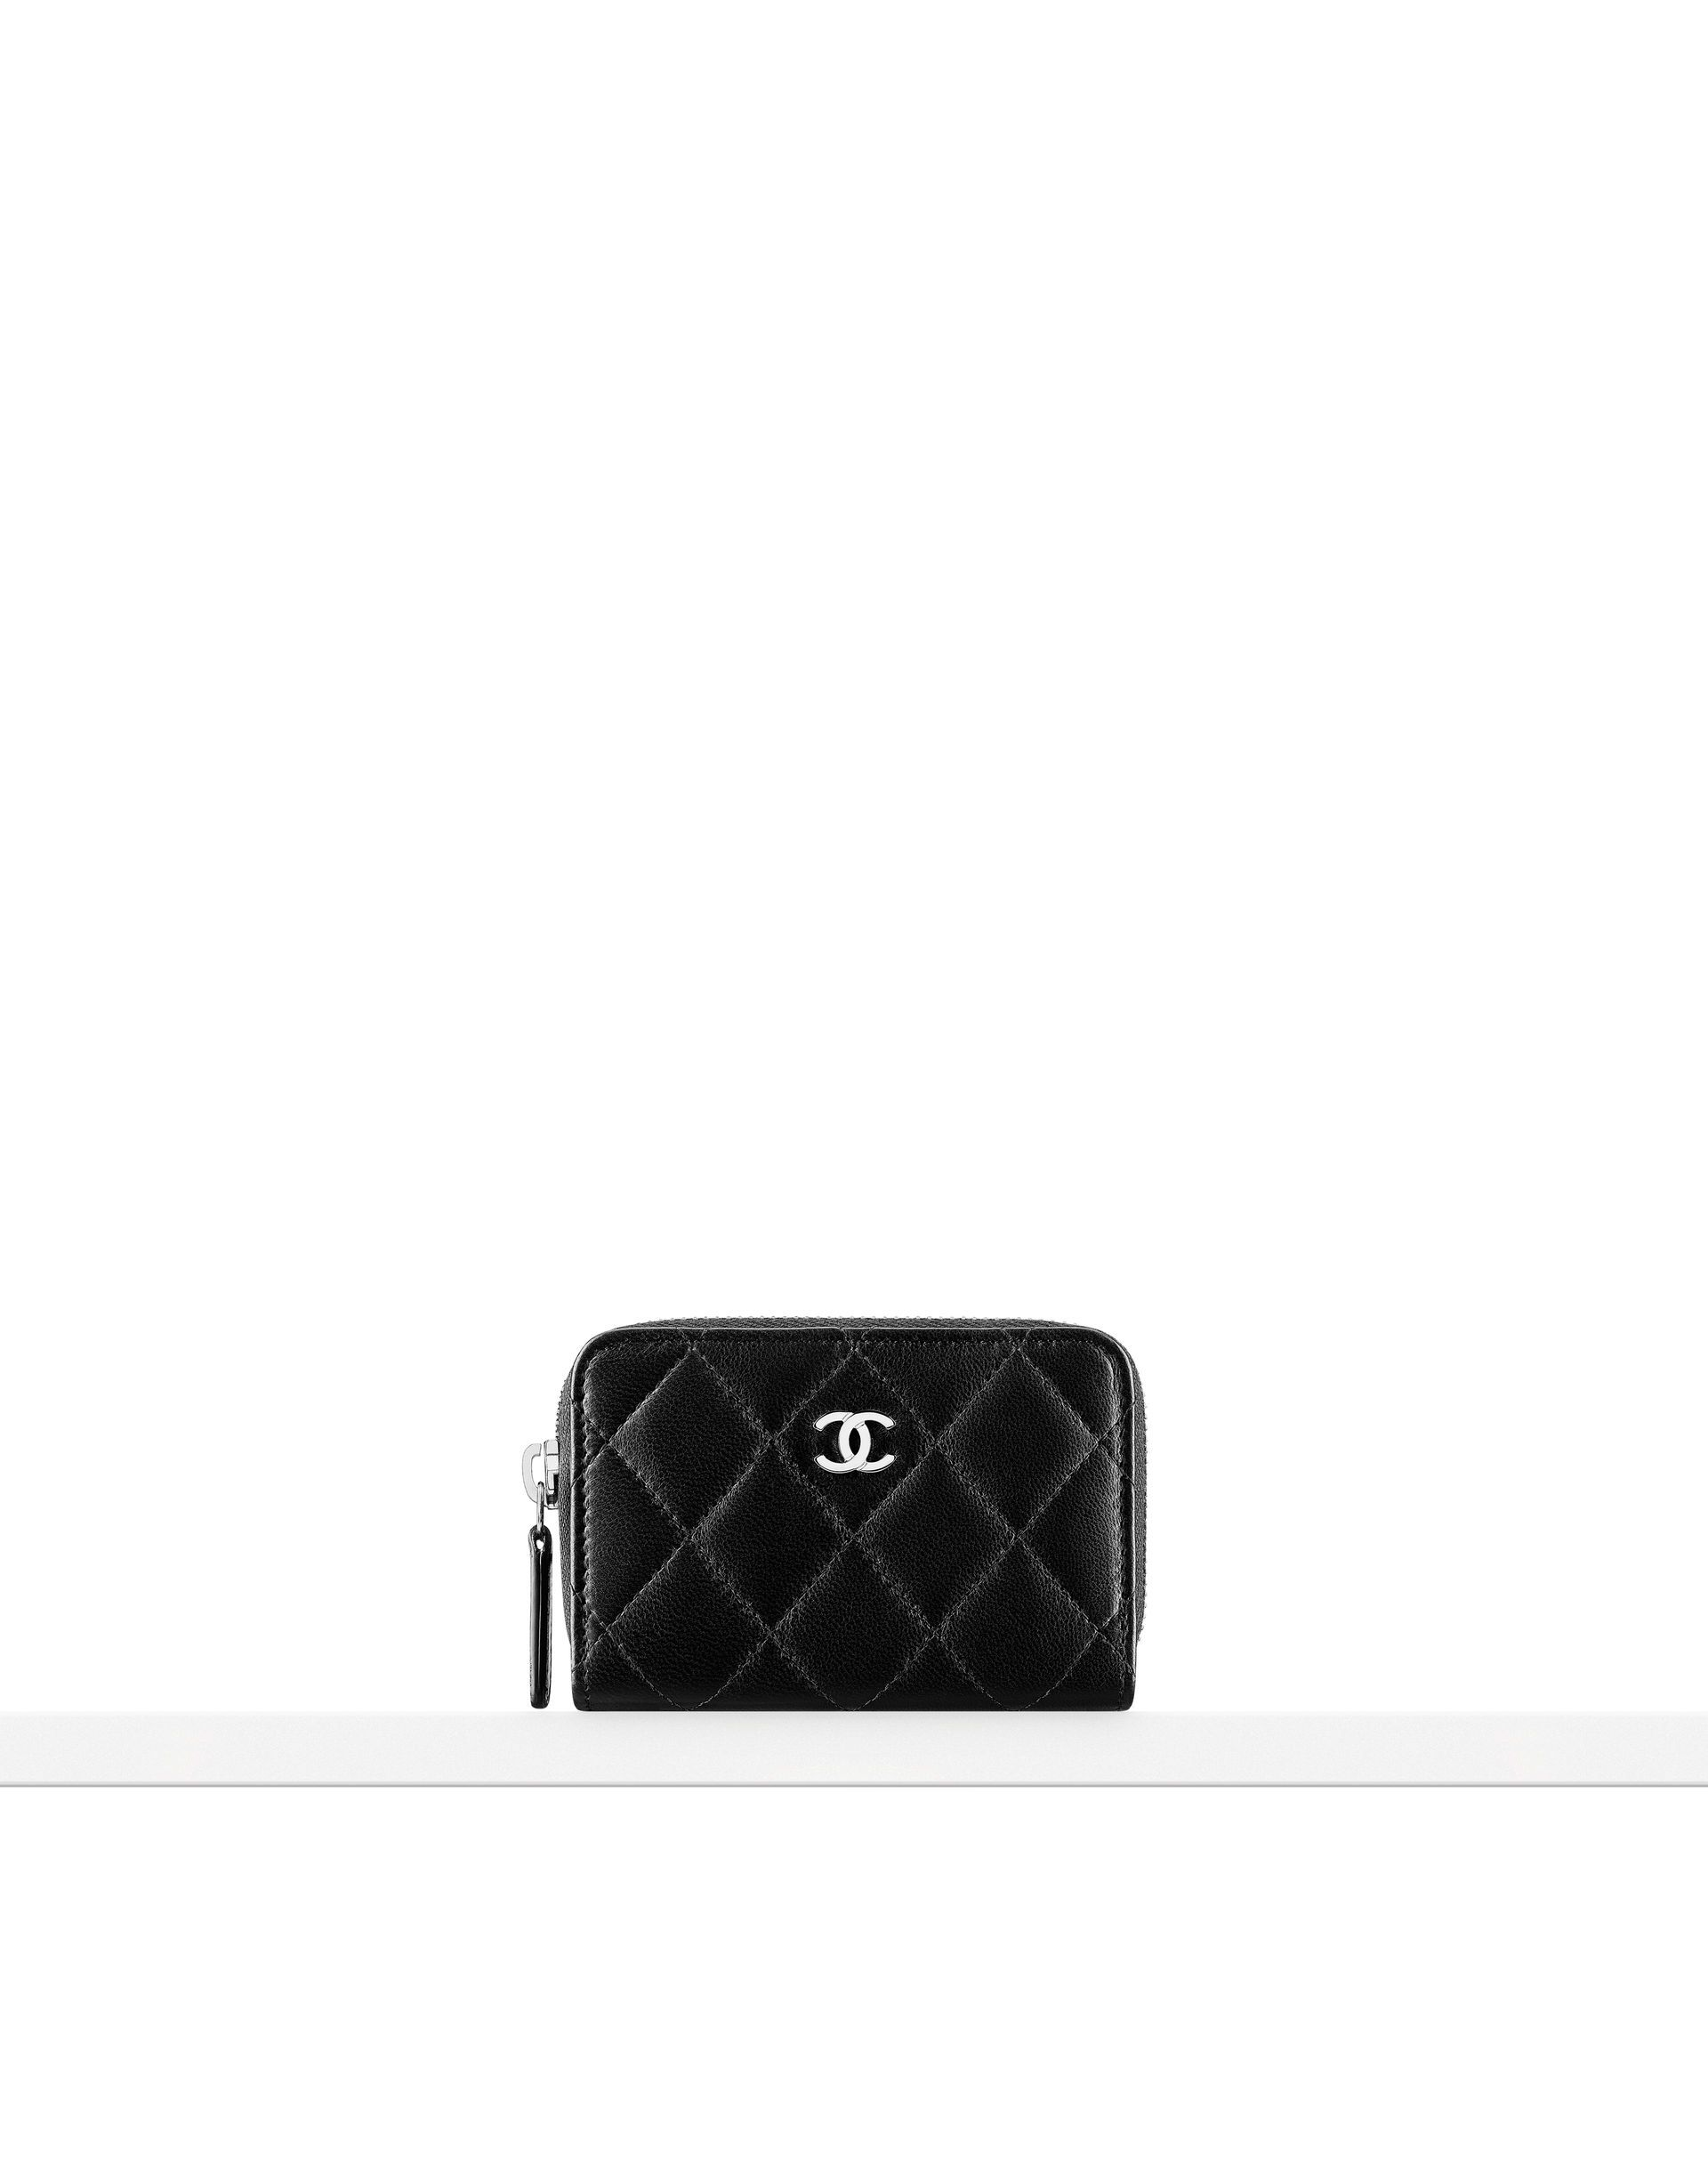 37b9d25f571b Coin Purse $475 Chanel 2017, Chanel Cruise, Chanel Fashion Show, Small  Leather Goods